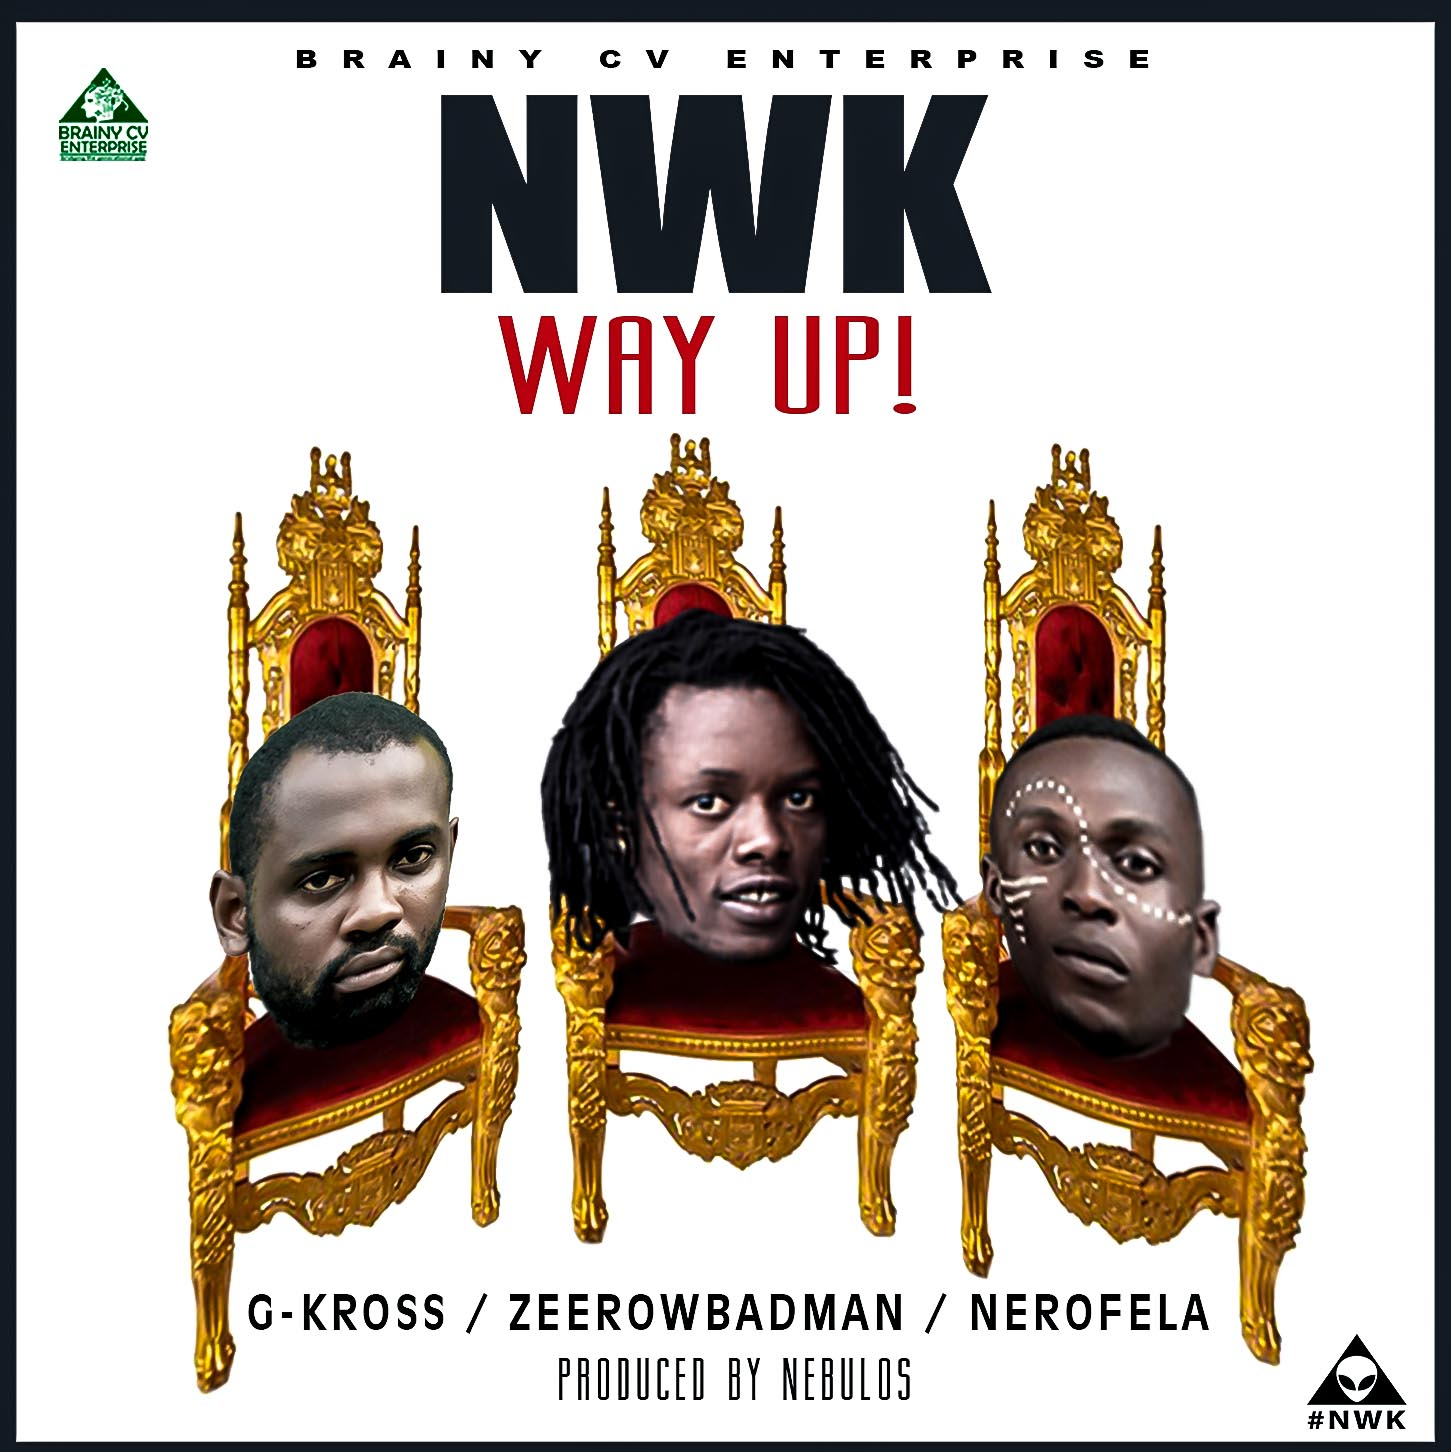 MUSIC LEAK: Way up! by #NWK [G-KROSS x ZEEROWBADMAN x